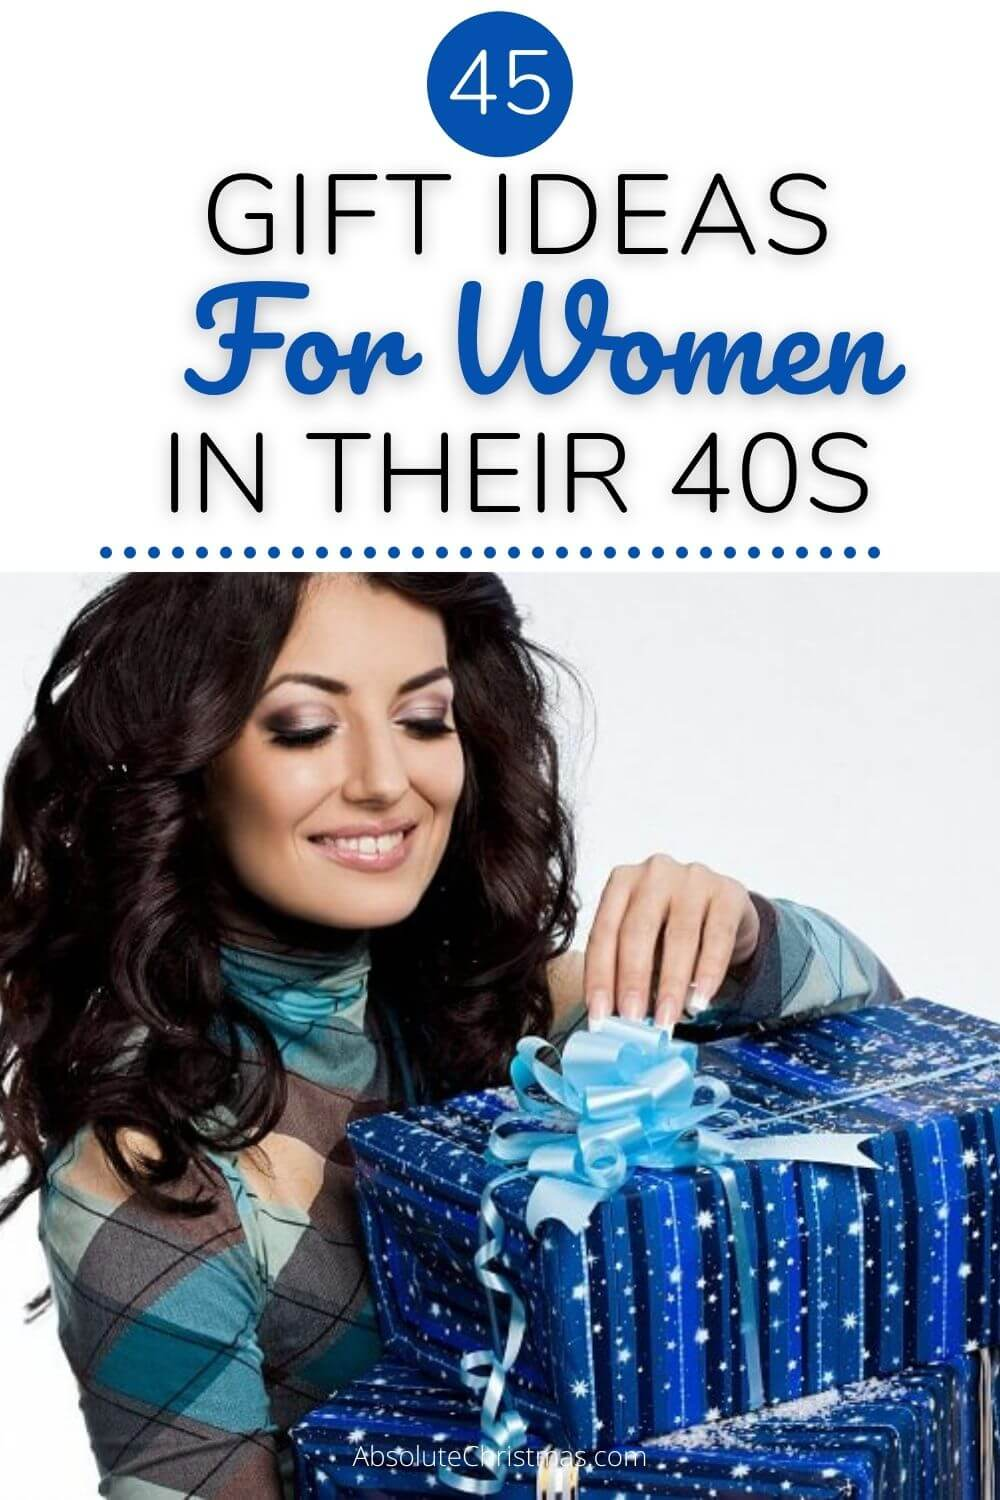 Gifts for Women In Their 40s